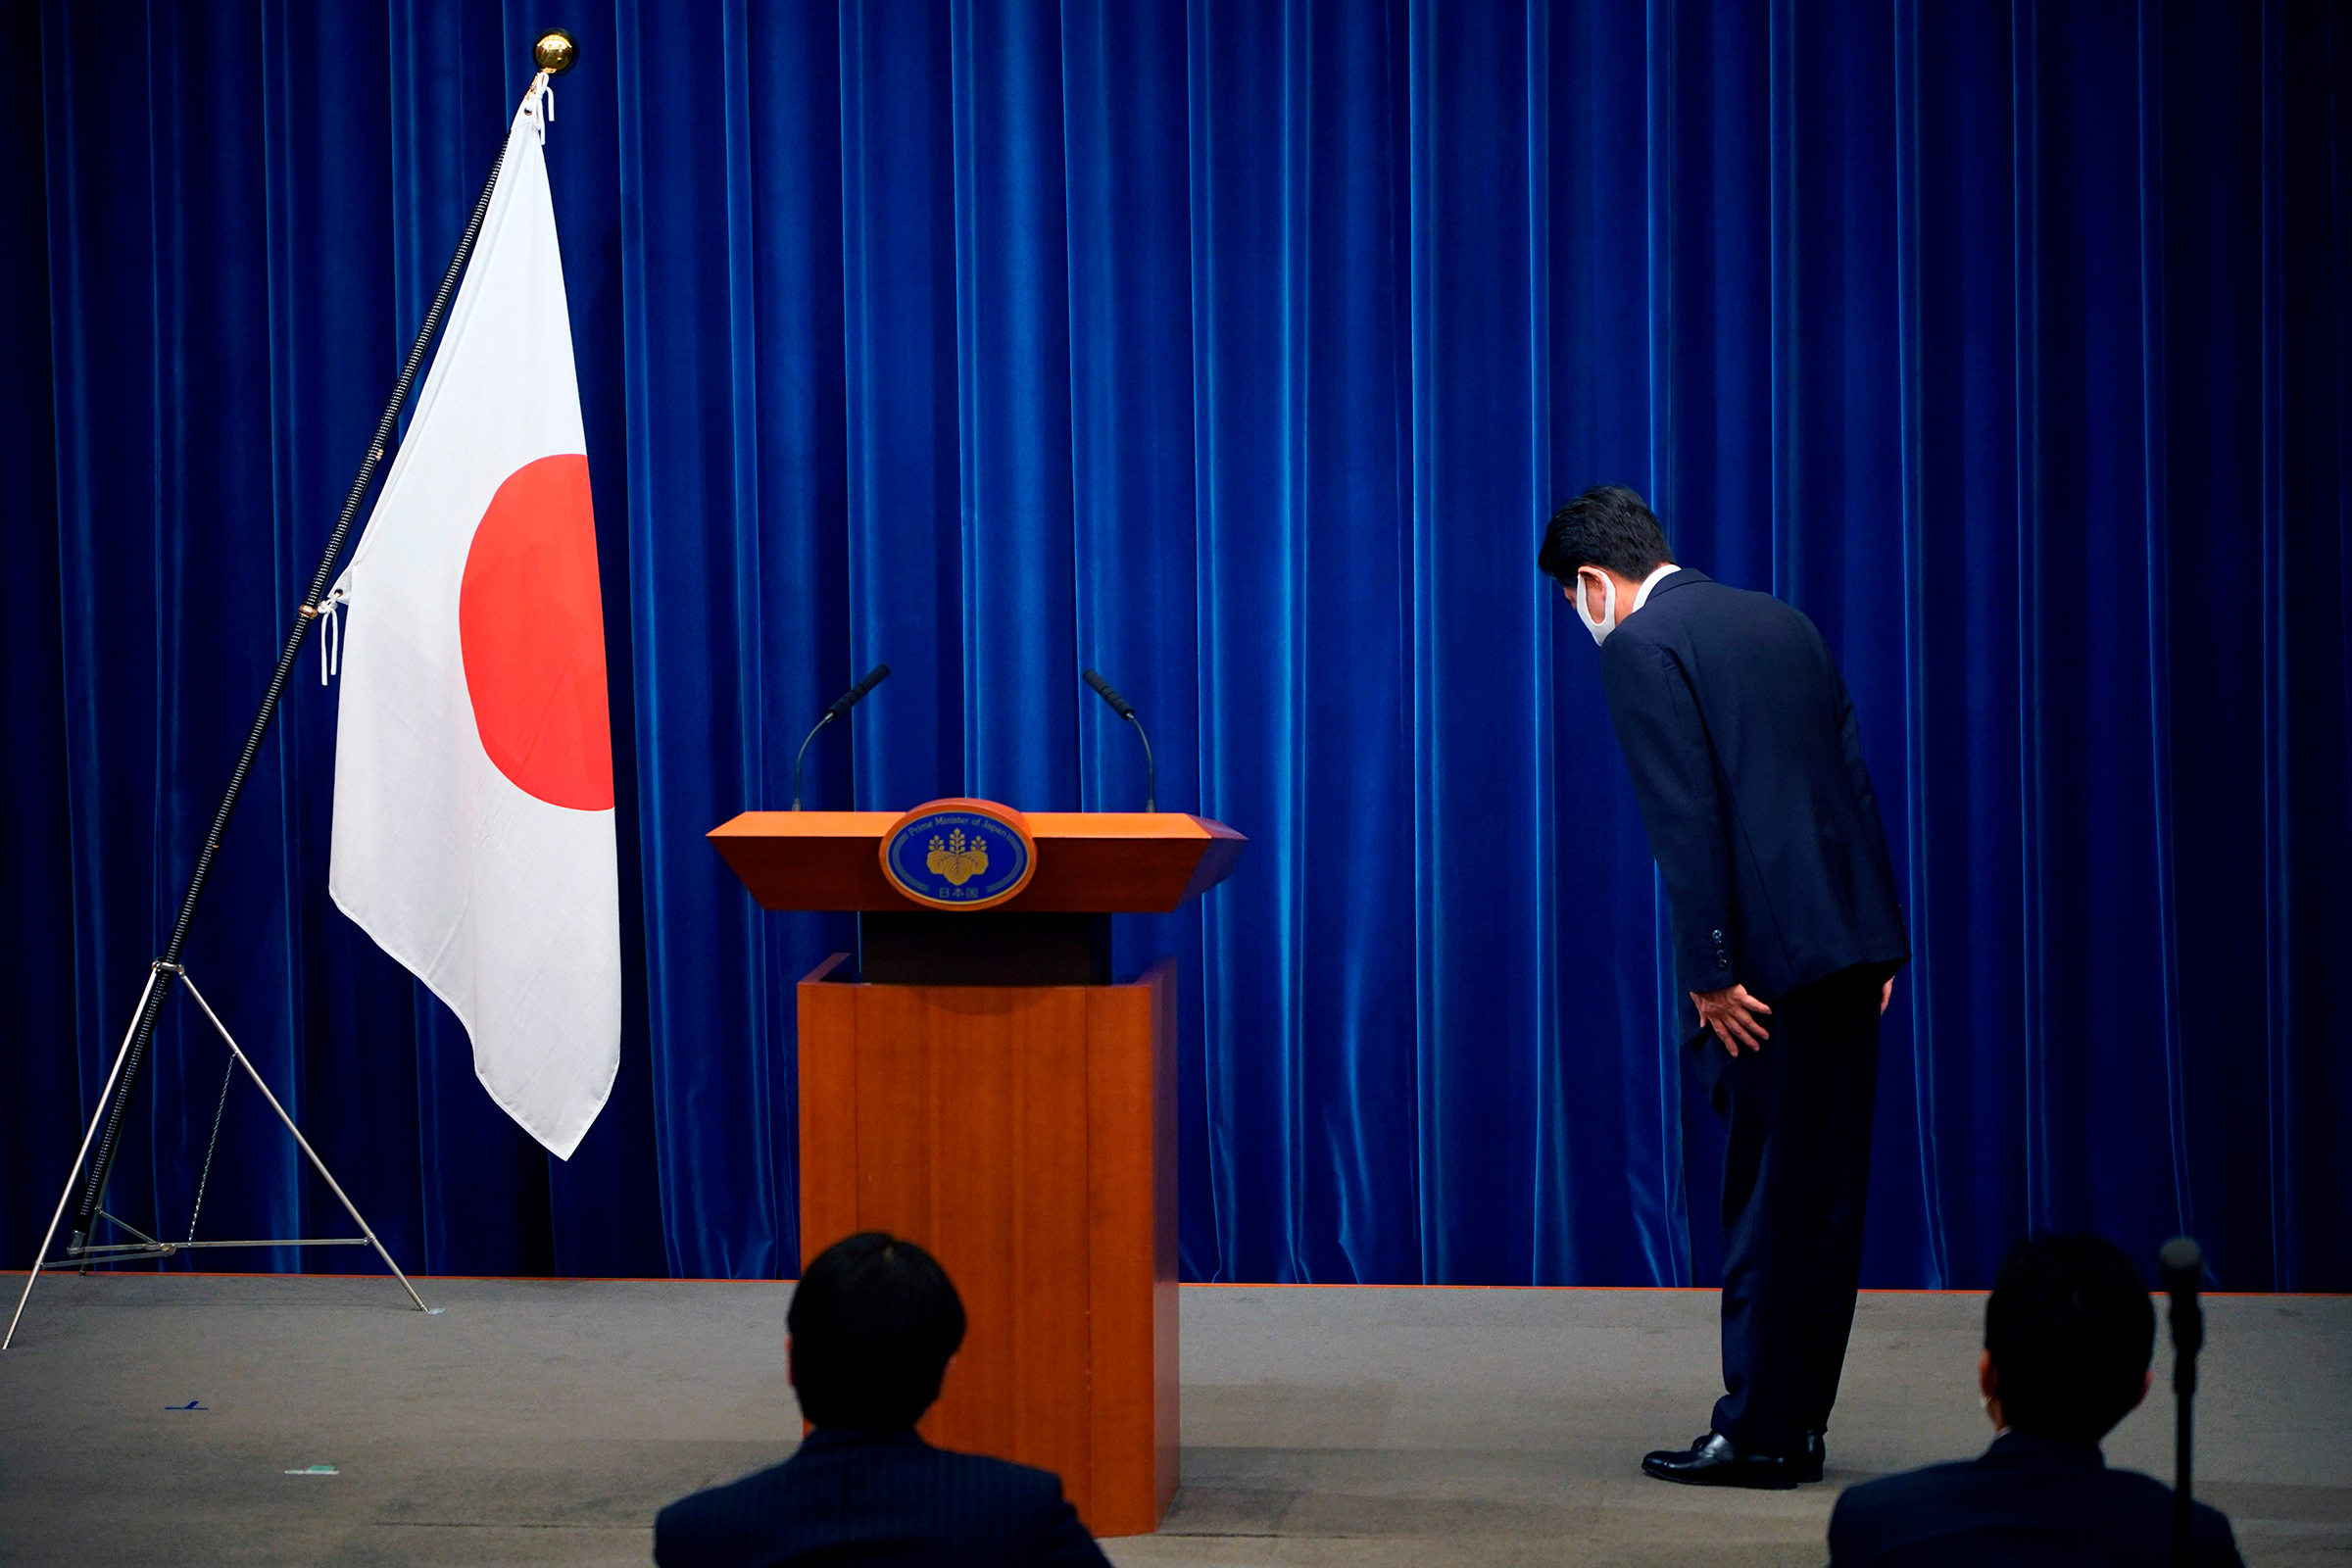 What it appears as Japanese politics after Abe's resignation